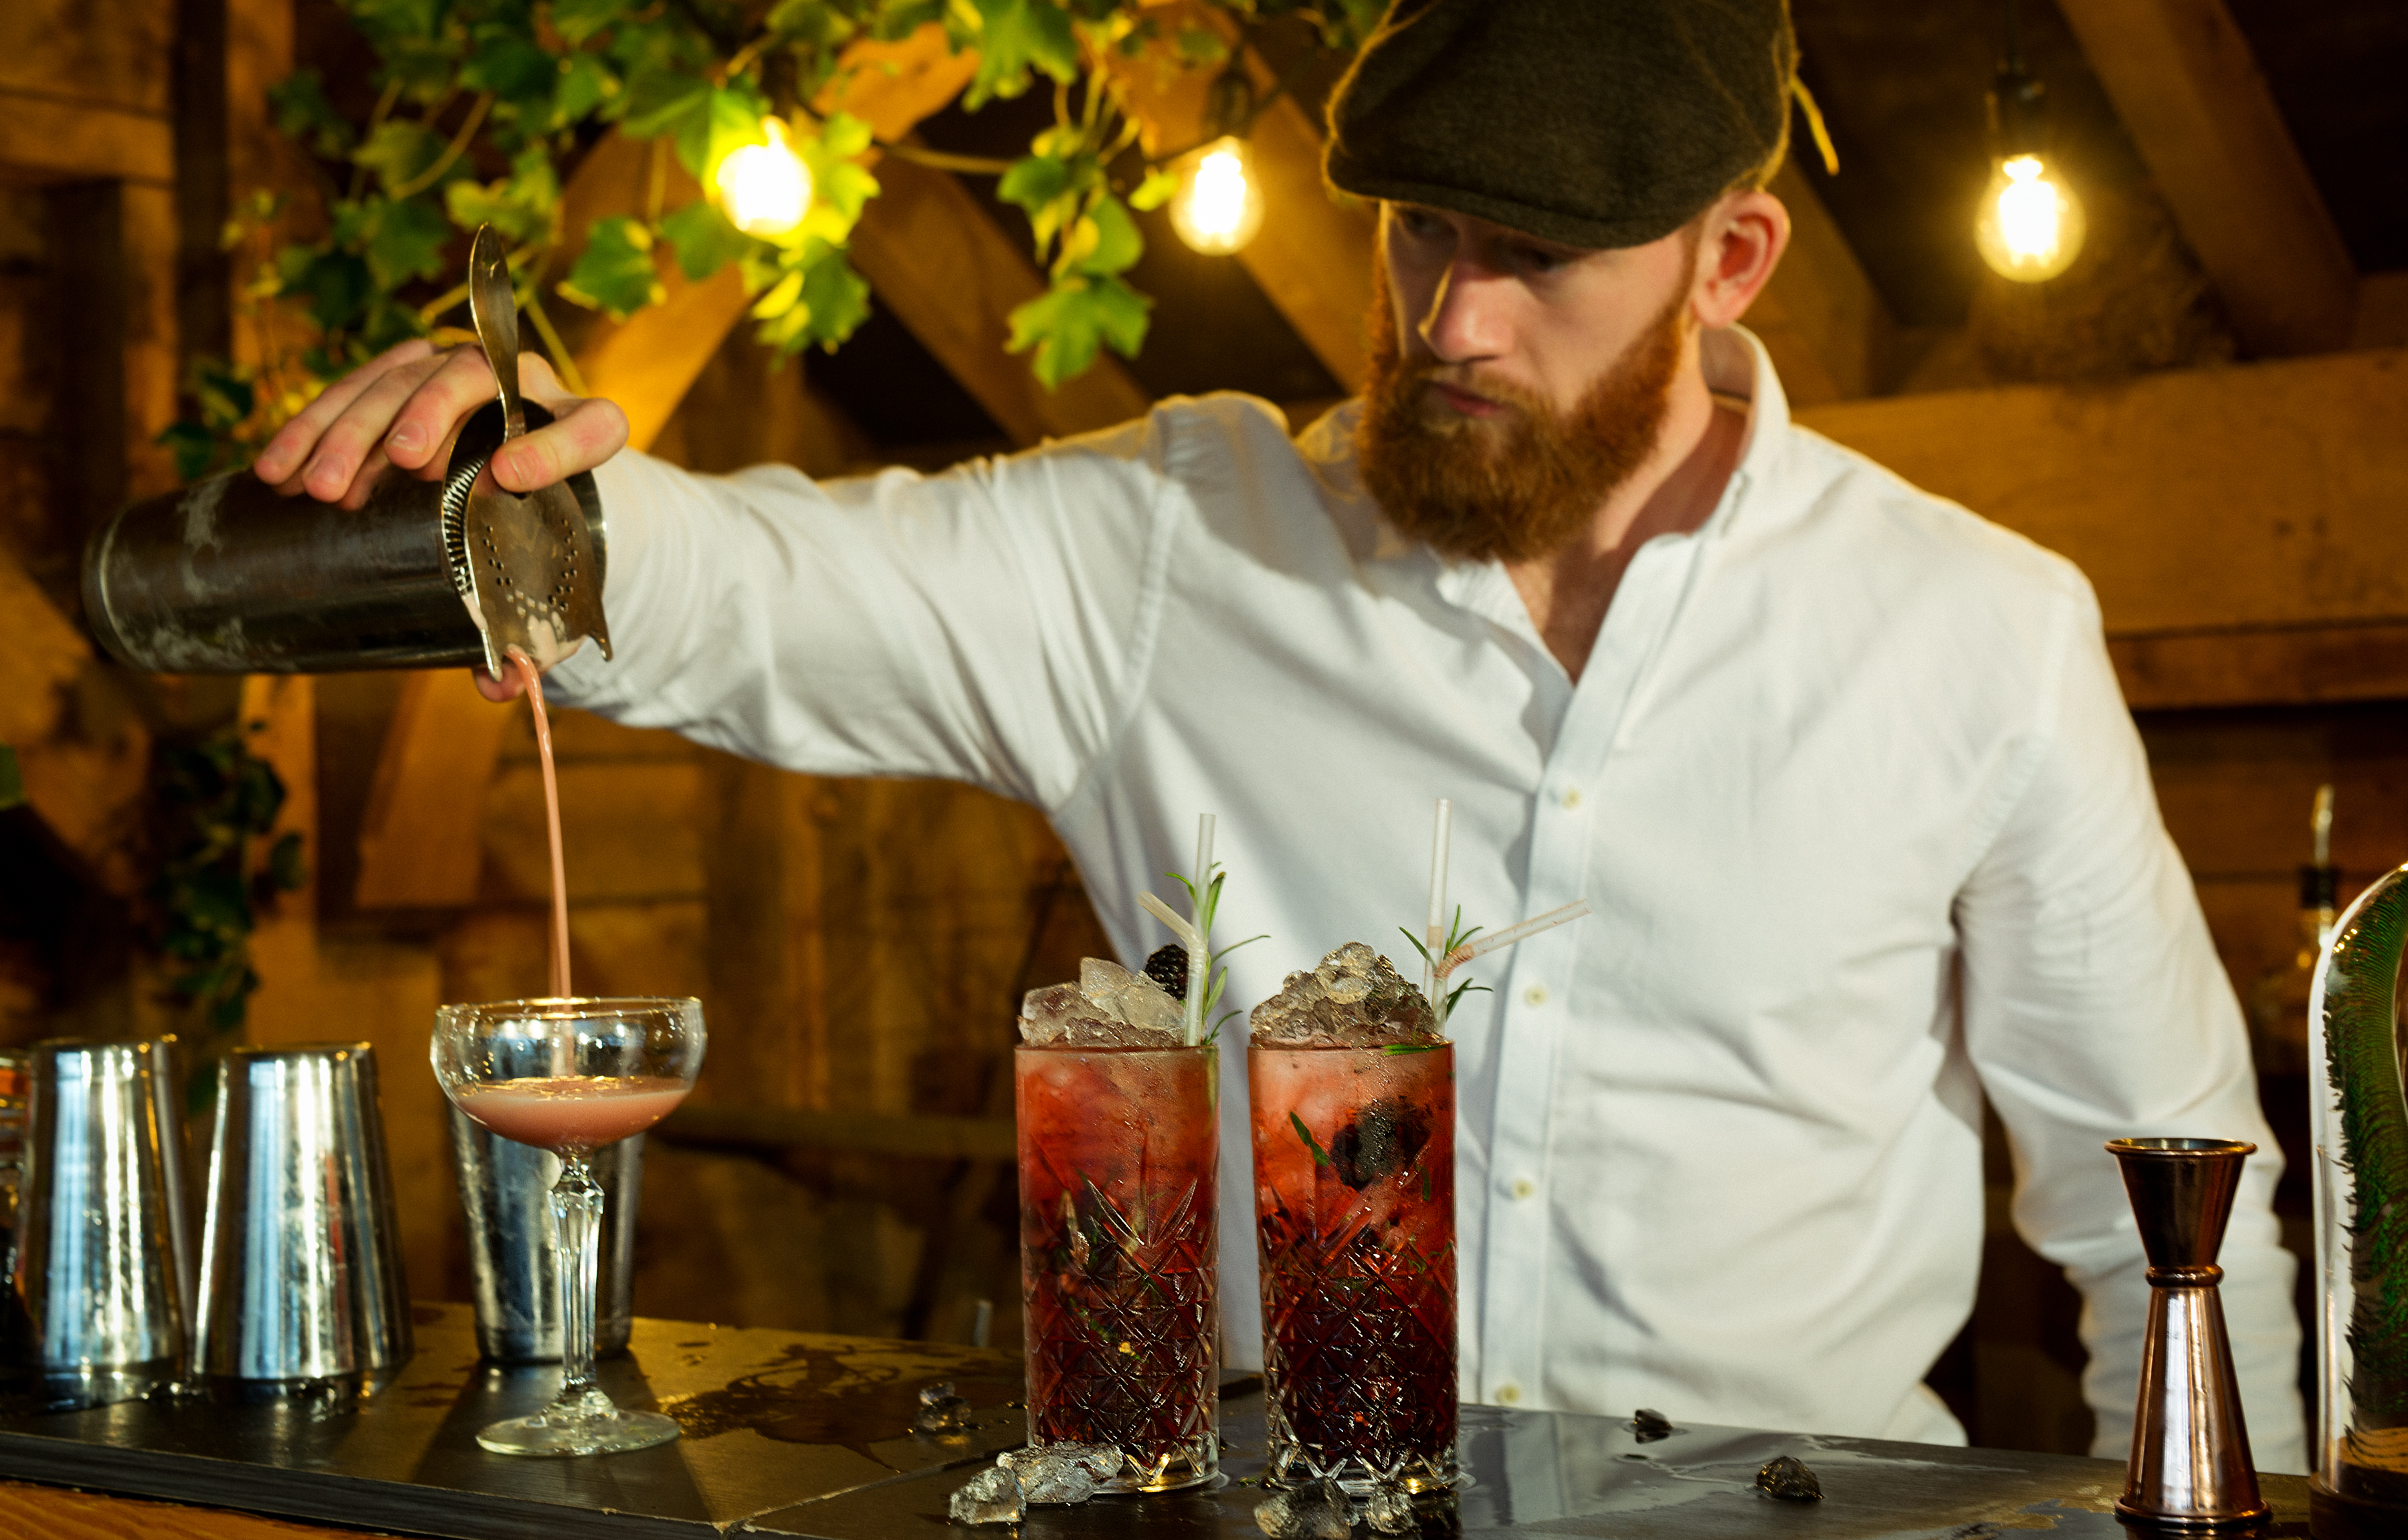 Yorkshire Bar Tender expect innovative mixology. Image by Food & Moore Photography